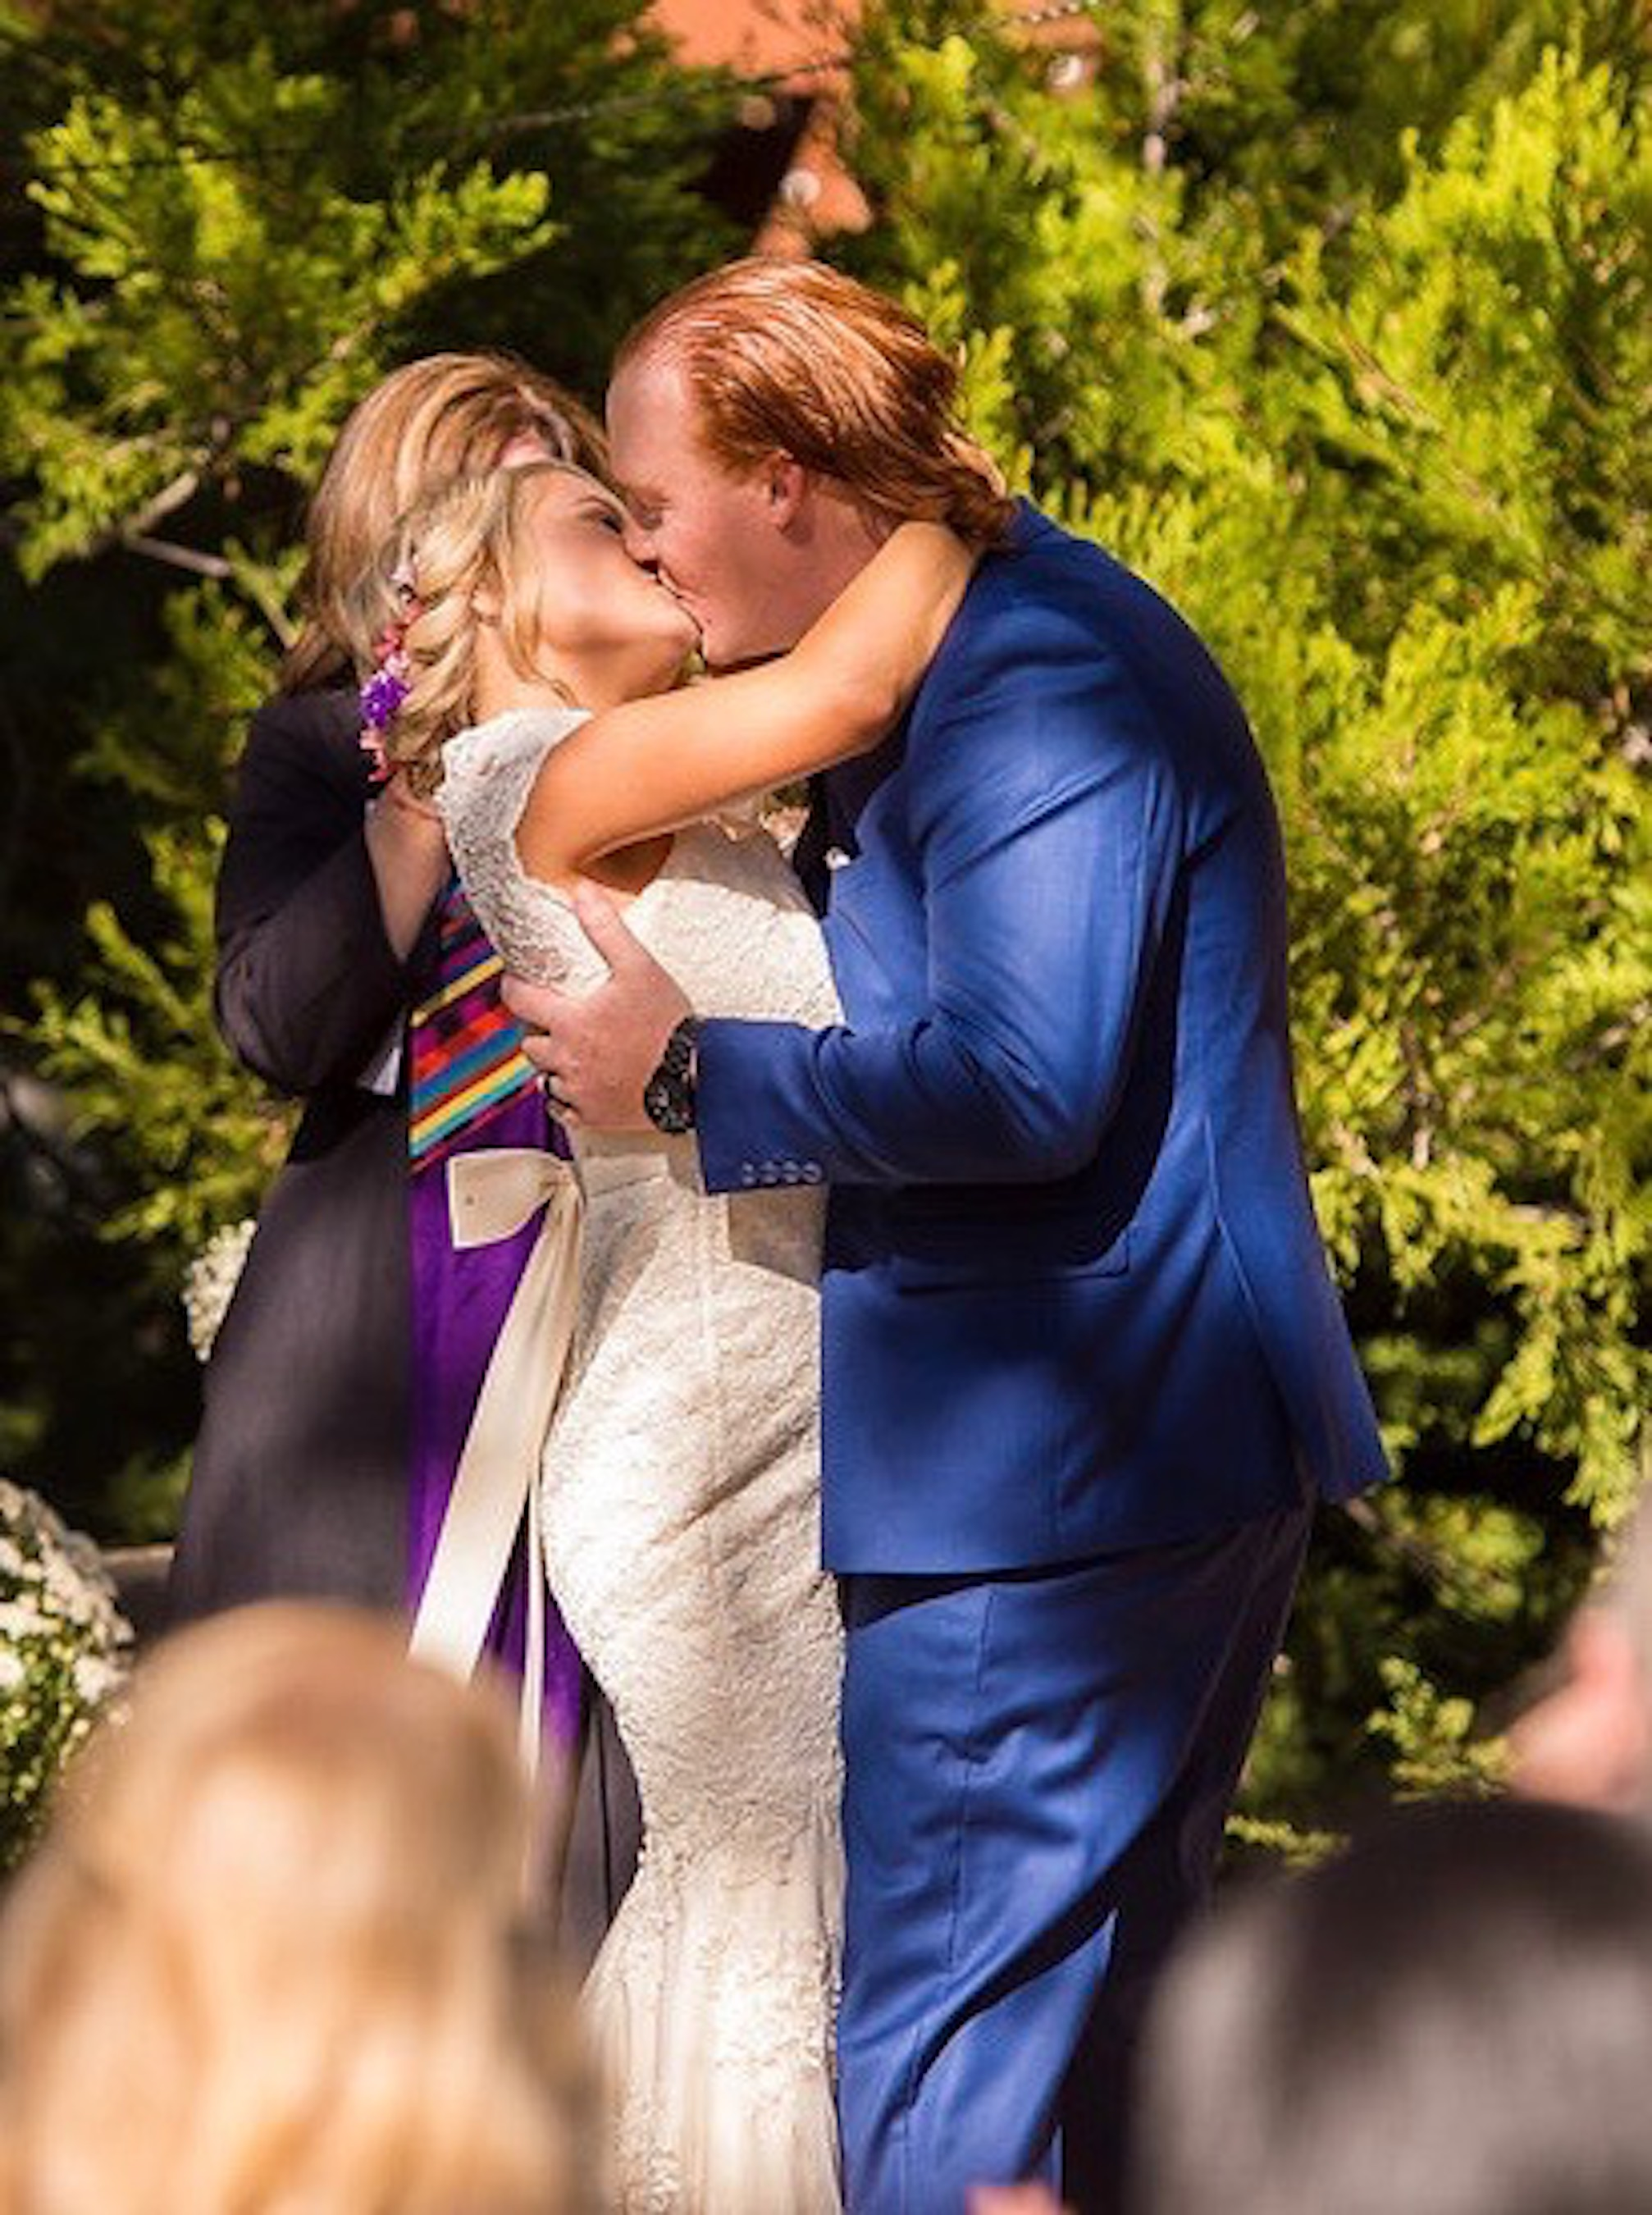 Venue- Woodland Park Manor, Idyllwild, Ca; Photographer- Isaac Wu; Caterer- Ponchos Tacos; Rentals- Party Plus; DJ- Woody Diaz; Officiant- Irma Kaye Sawyer; Makeup- Summer Conrad; Hair Stylist-Danni Calvert